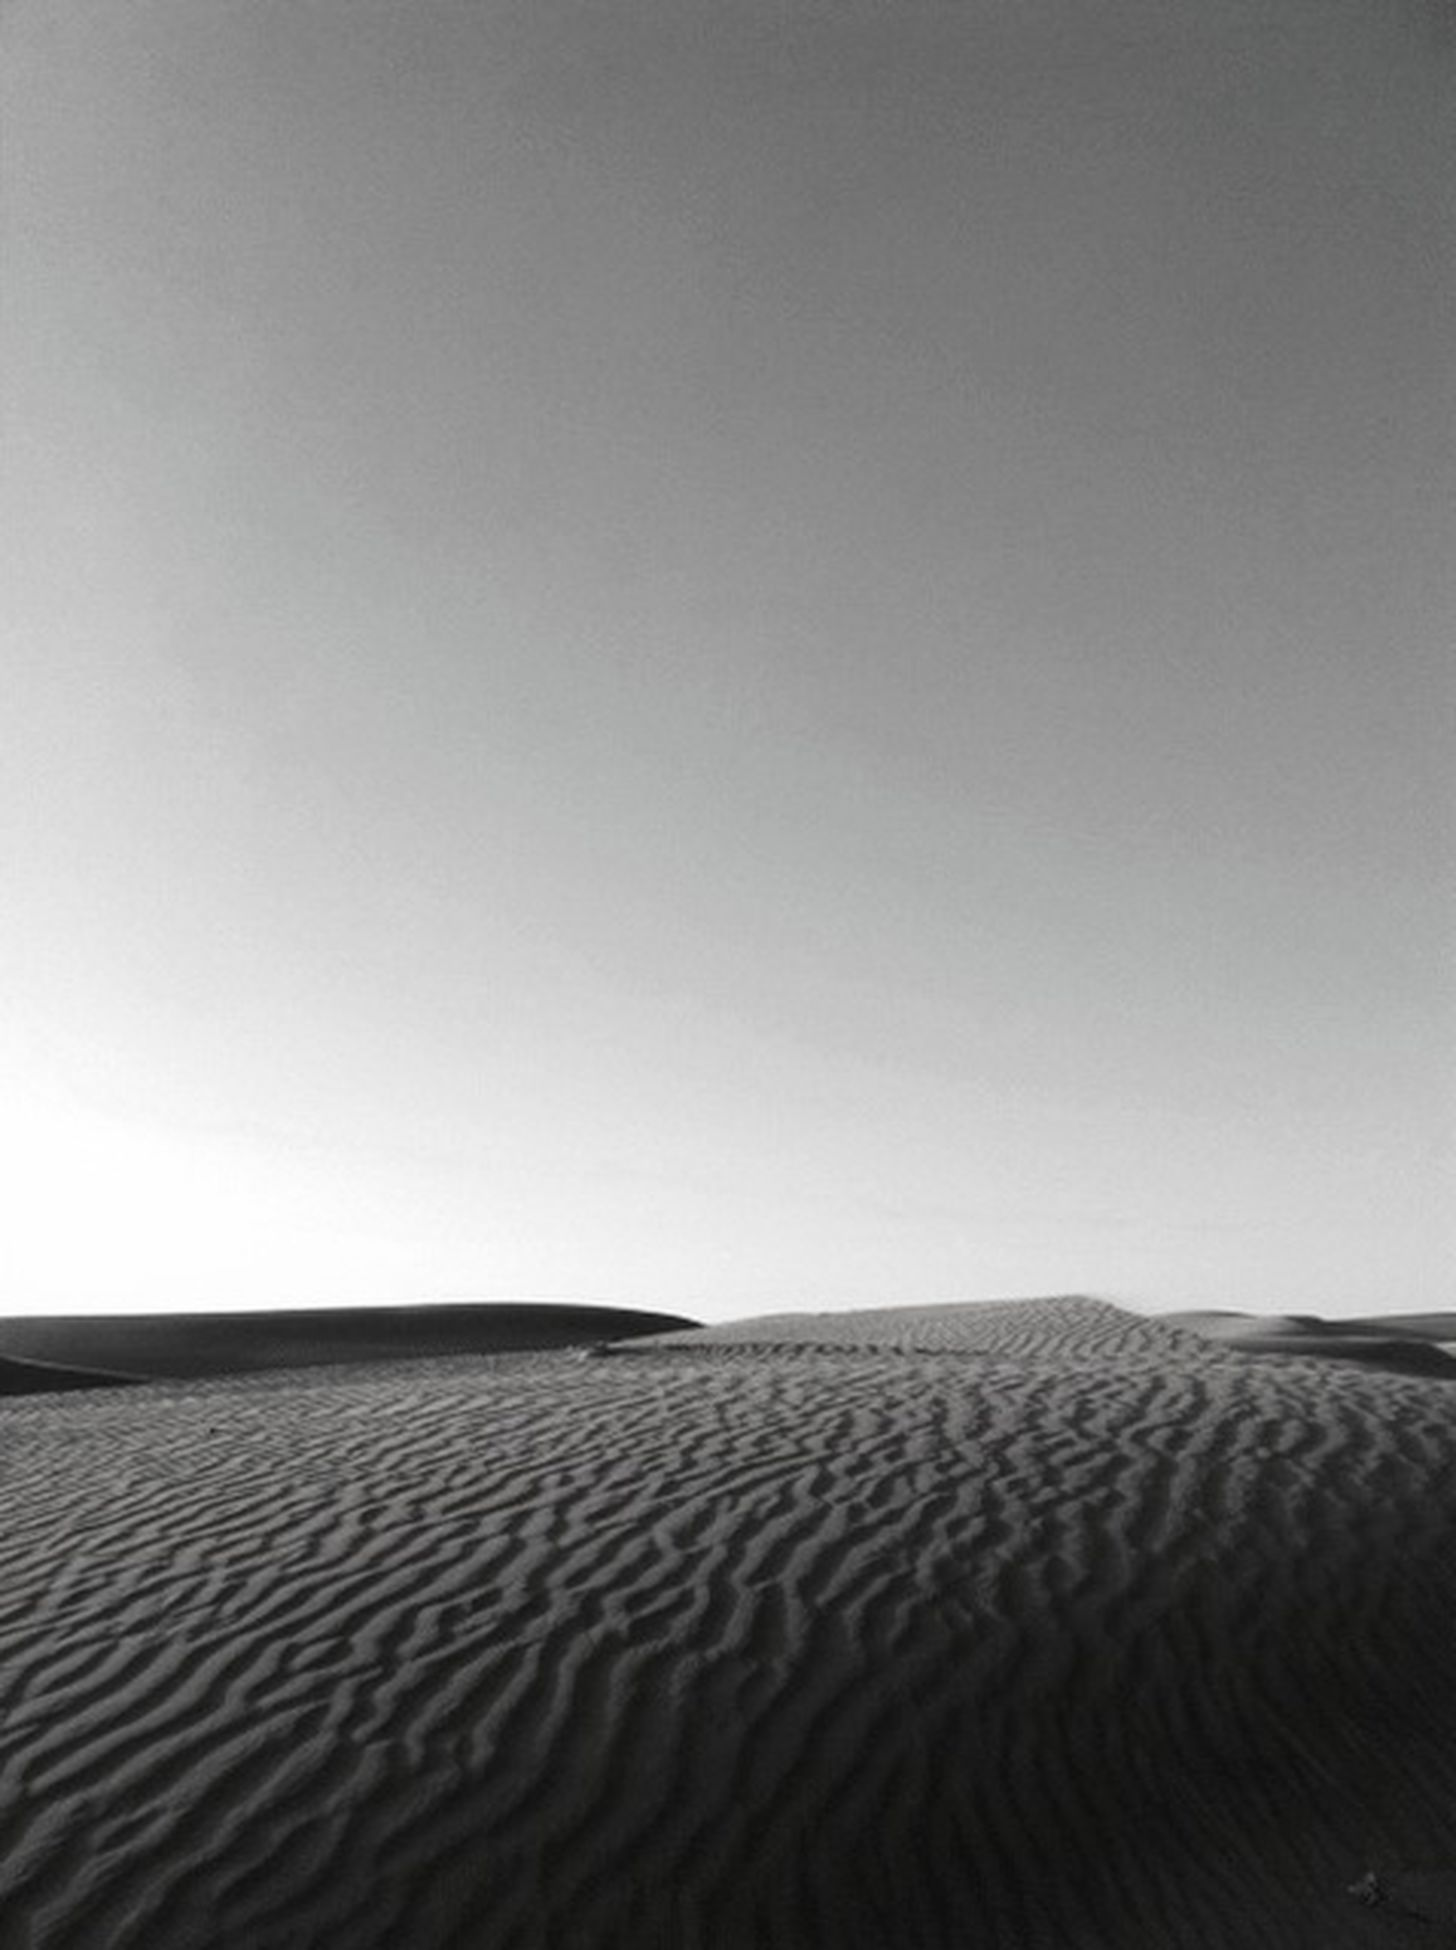 sand dune, copy space, clear sky, desert, tranquility, tranquil scene, sand, pattern, landscape, day, nature, no people, horizon over land, backgrounds, arid climate, scenics, outdoors, remote, sunlight, brown